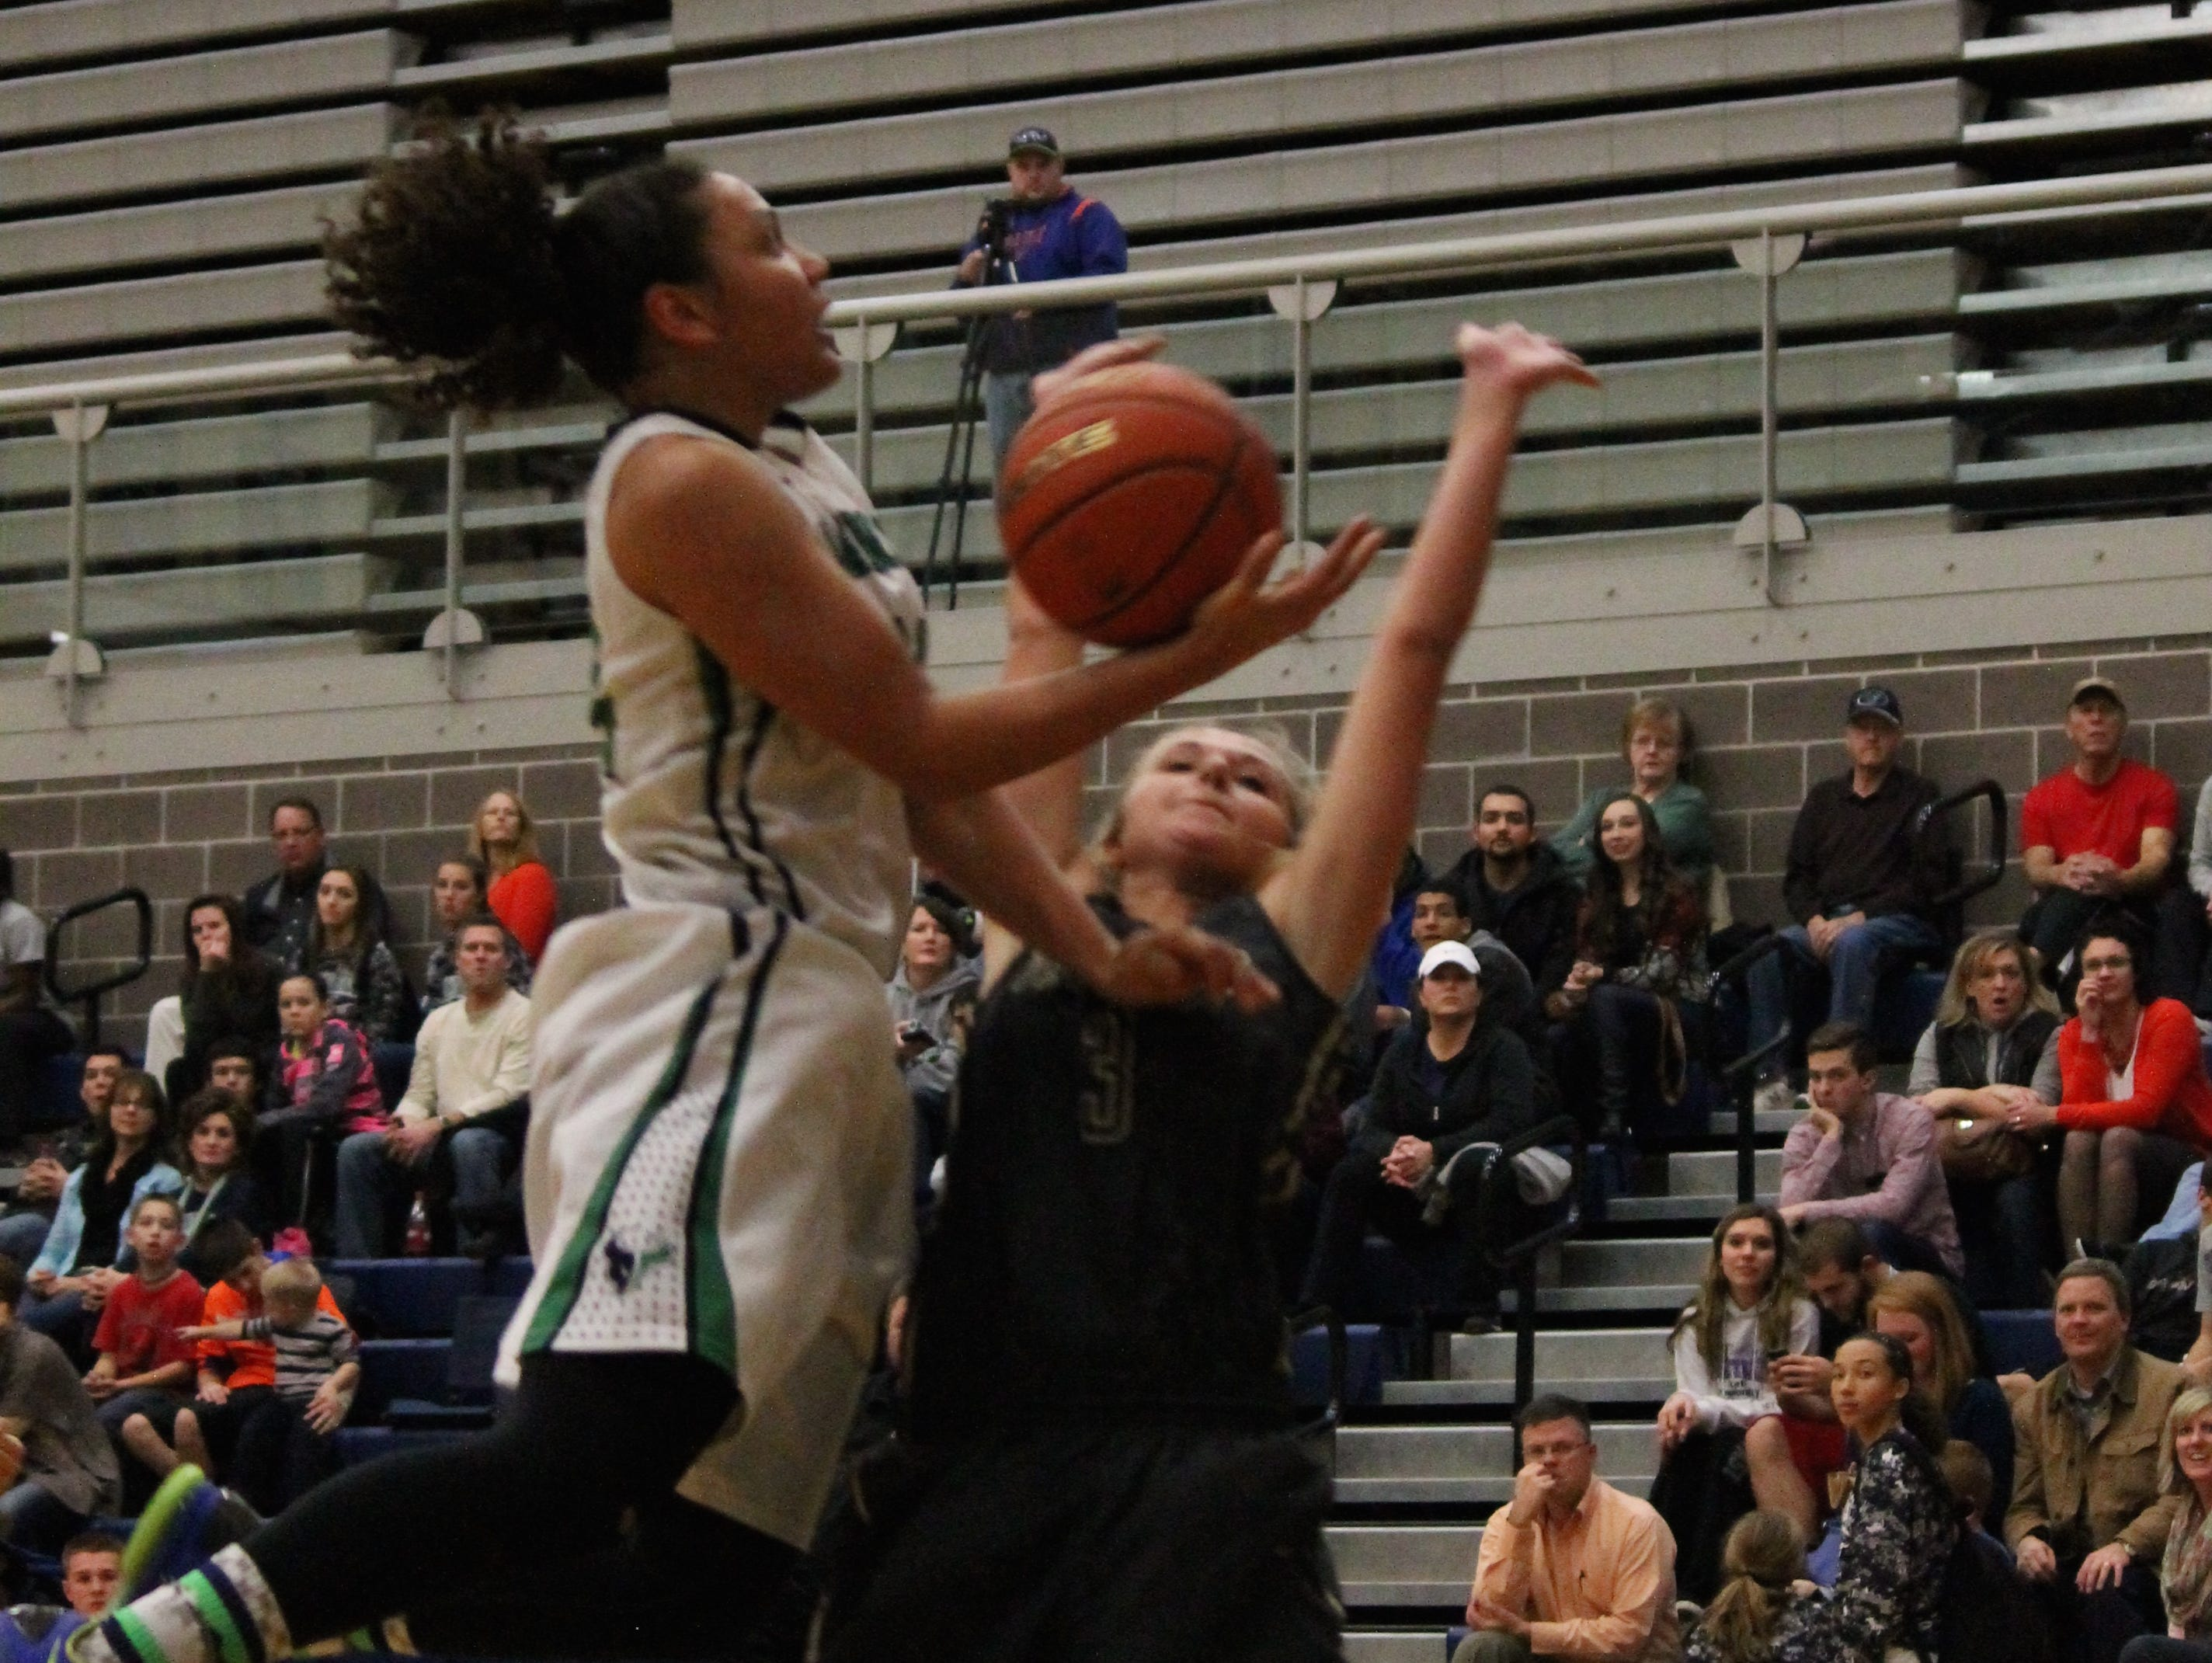 Destiny Slocum is ranked No. 4 by ESPN for the class of 2016.